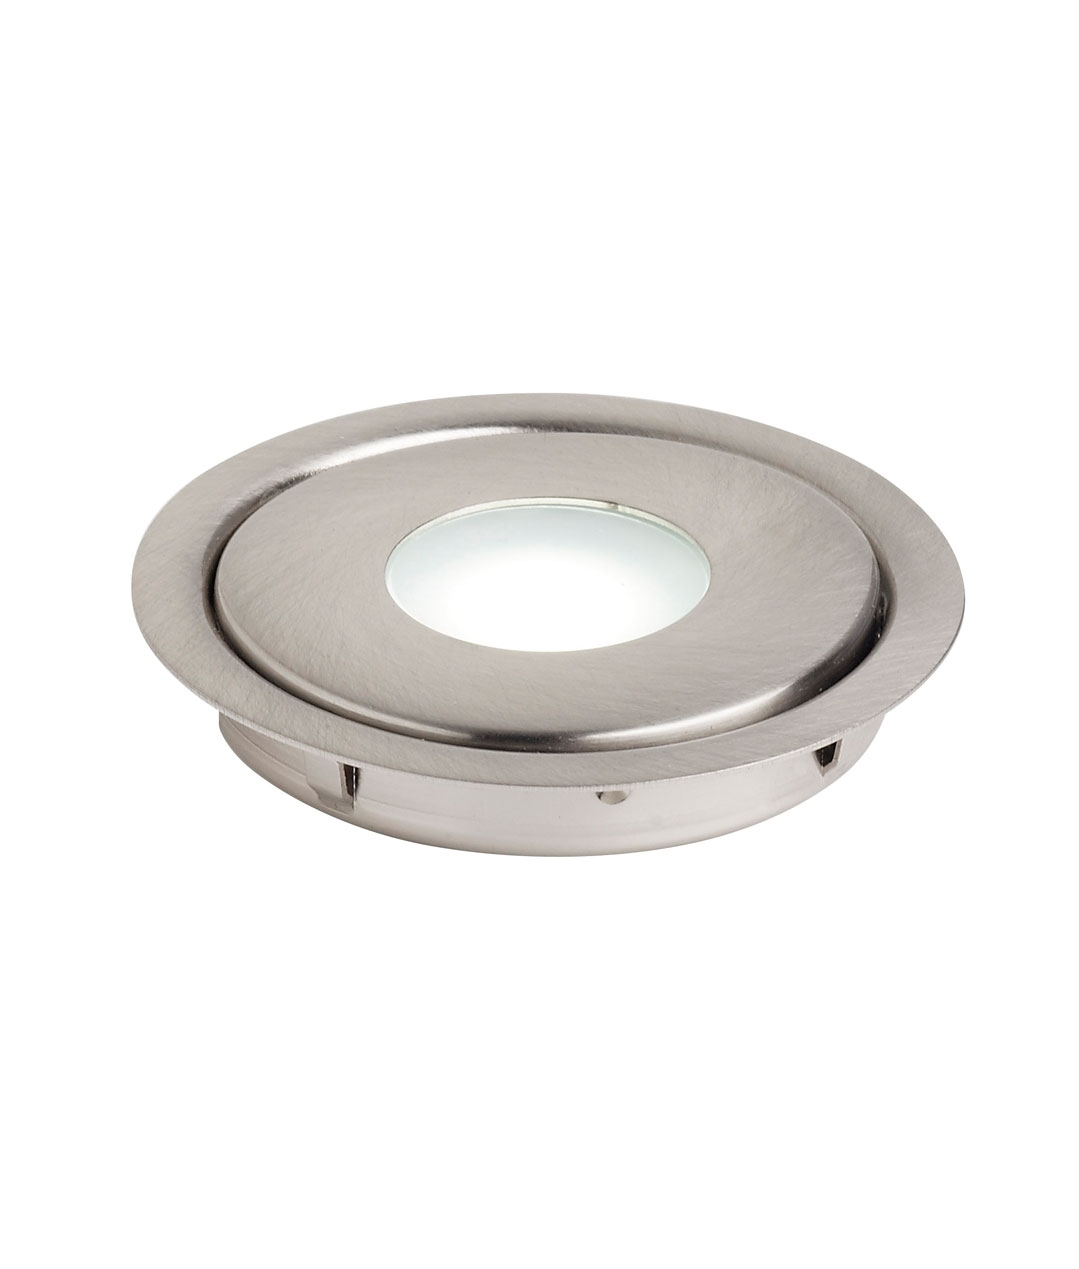 Stainless Steel Recessed Led Floor Spot Ip67 Rated